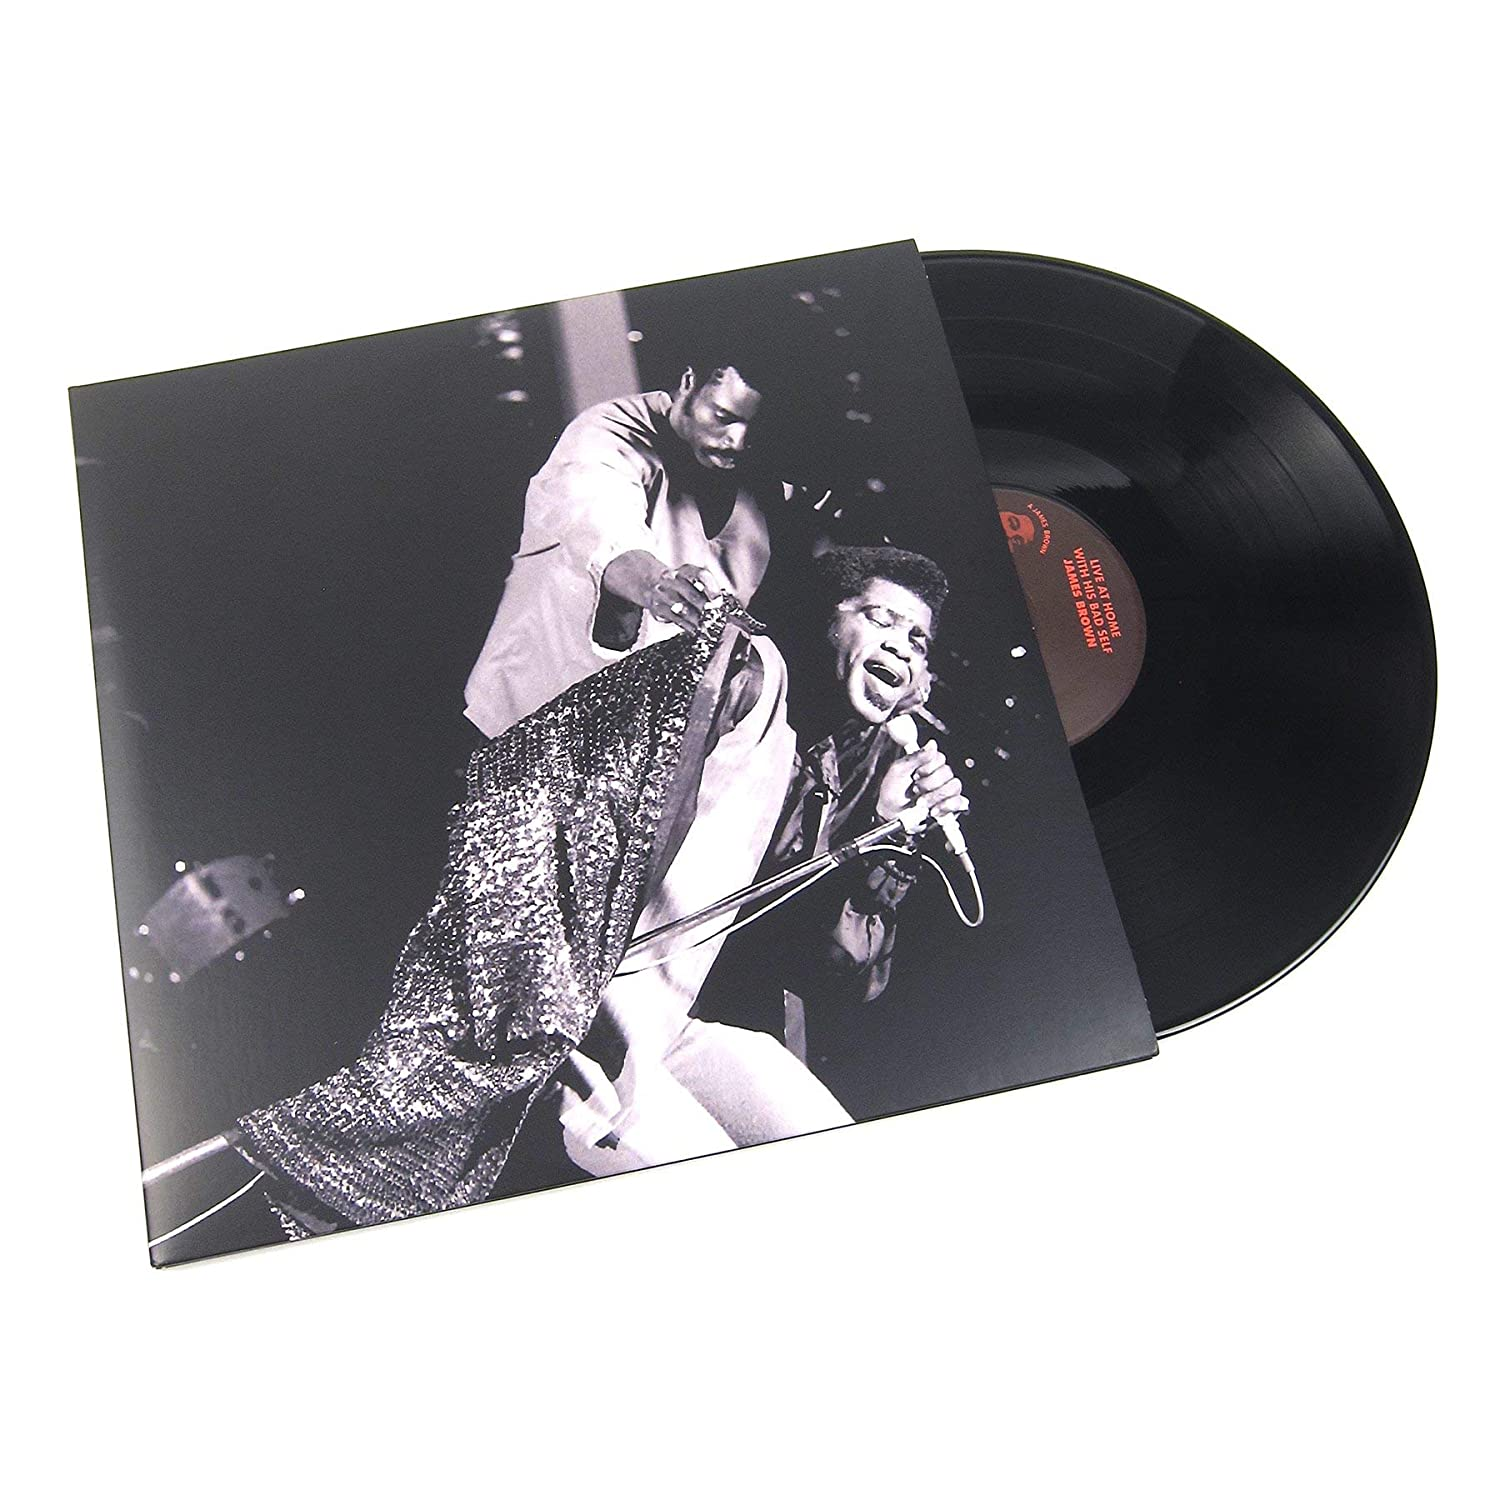 James Brown: Live At Home With His Bad Self Vinyl 2LP